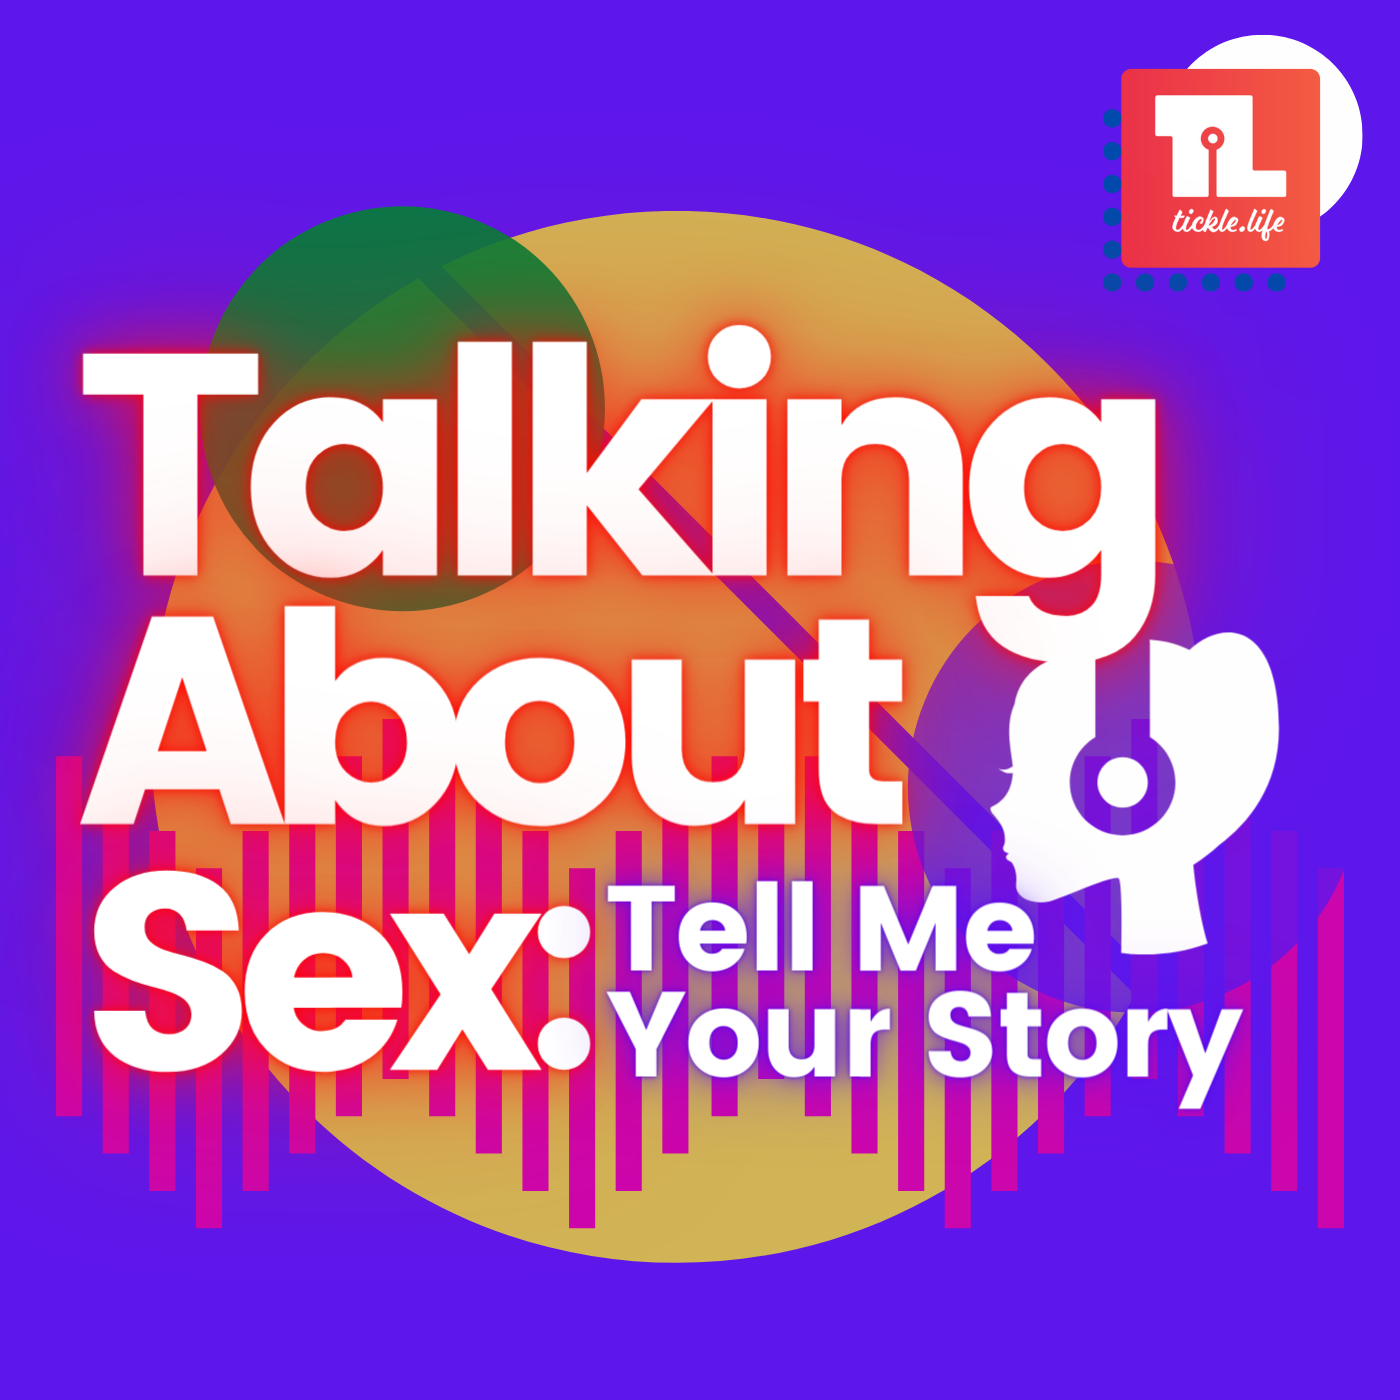 Talking about sex: Tell me Your Story